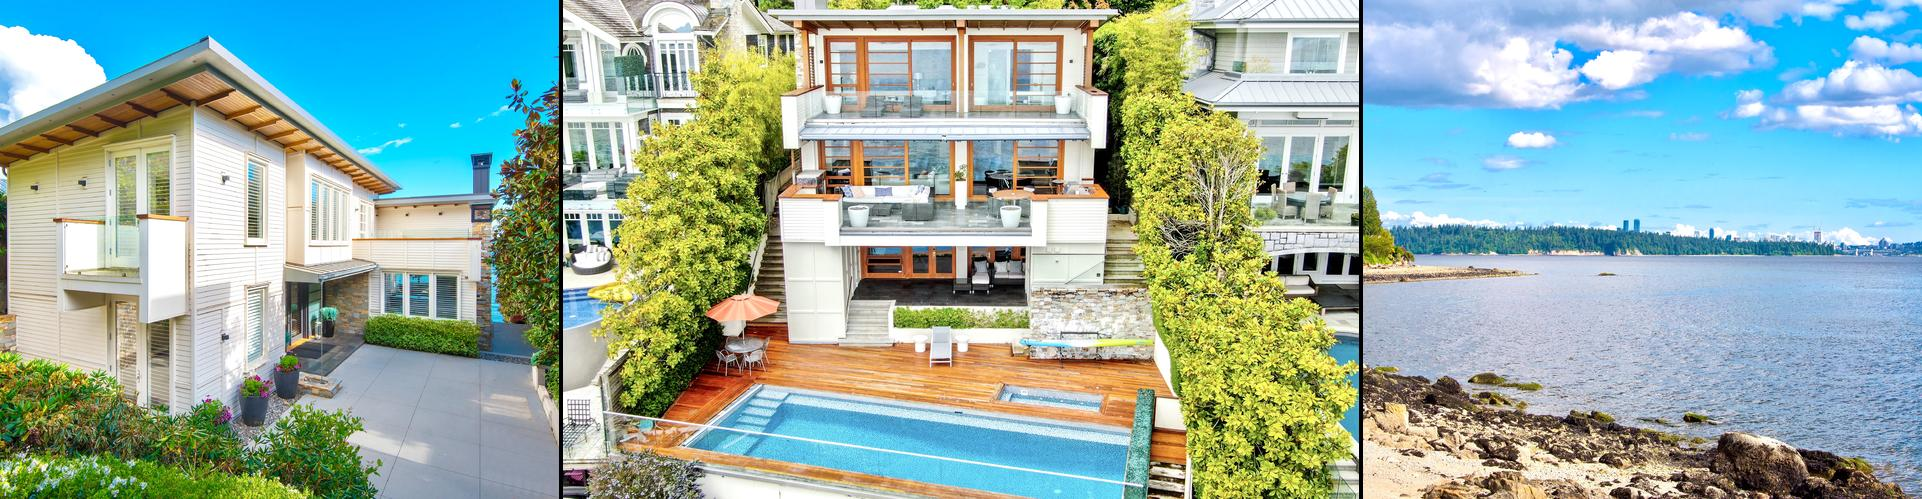 Luxury West Vancouver Real Estate and Homes - Vancouver's Listings on one level home plans and designs, vacation home plans and designs, garage home plans and designs, custom home plans and designs, waterfront cottage plans, beach home plans and designs,